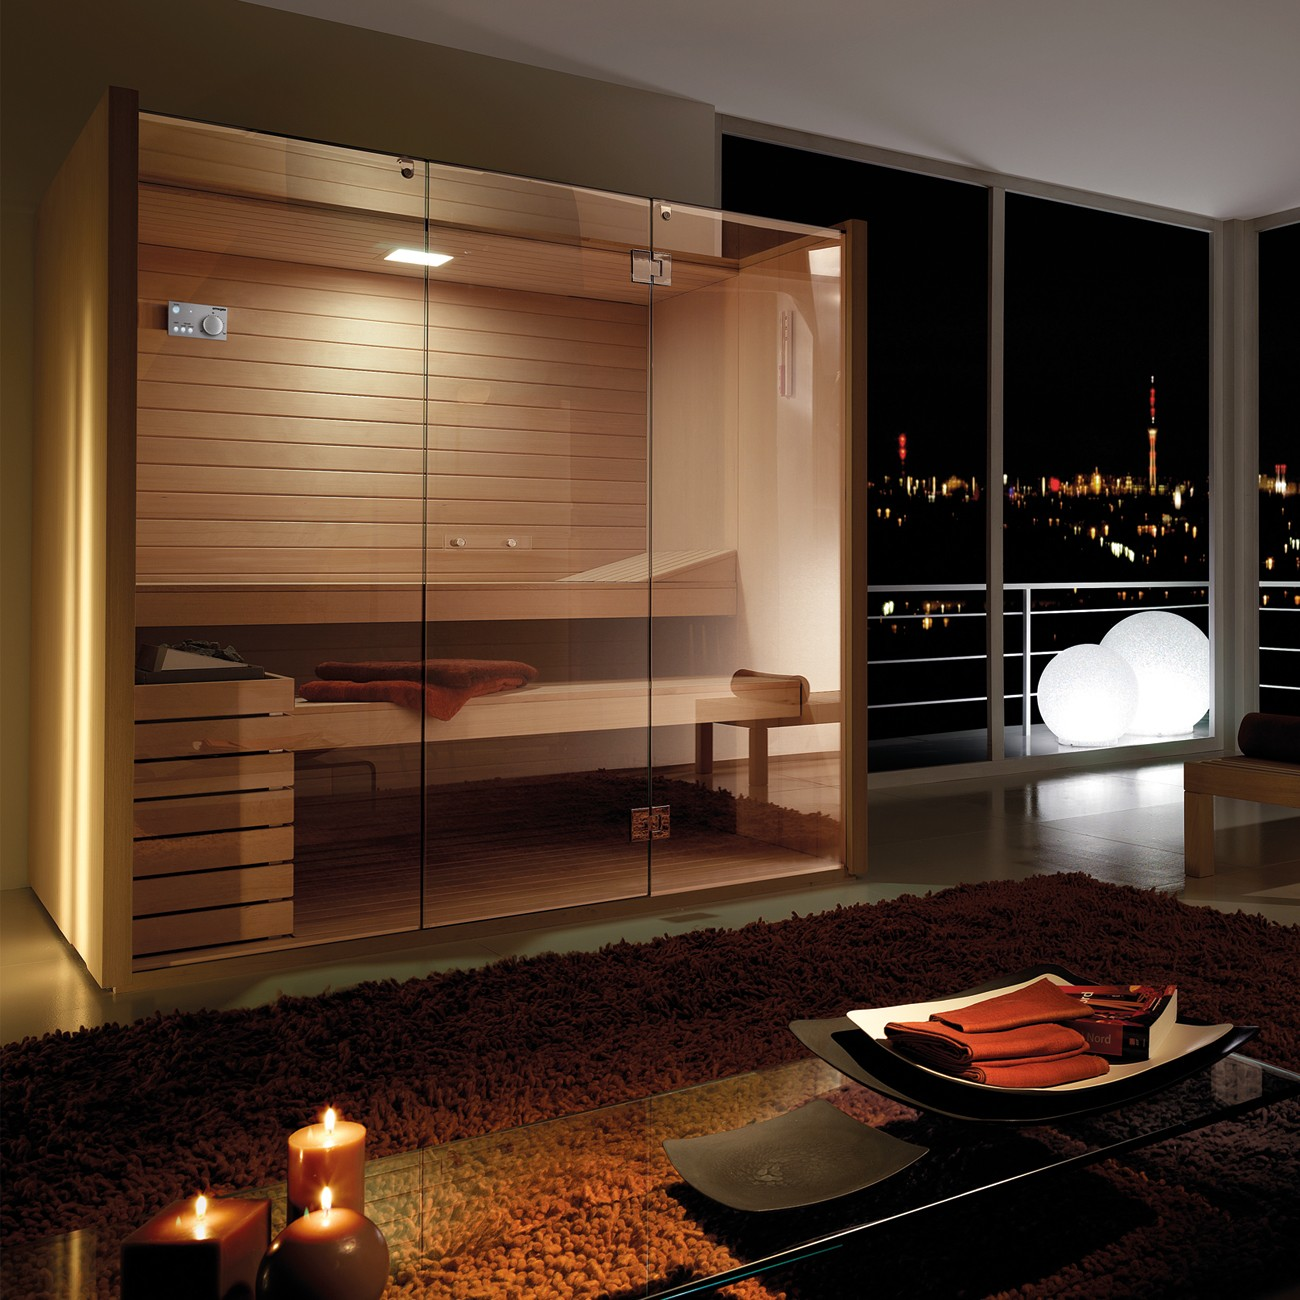 pourquoi avoir un sauna chez soi piscines et jacuzzi. Black Bedroom Furniture Sets. Home Design Ideas